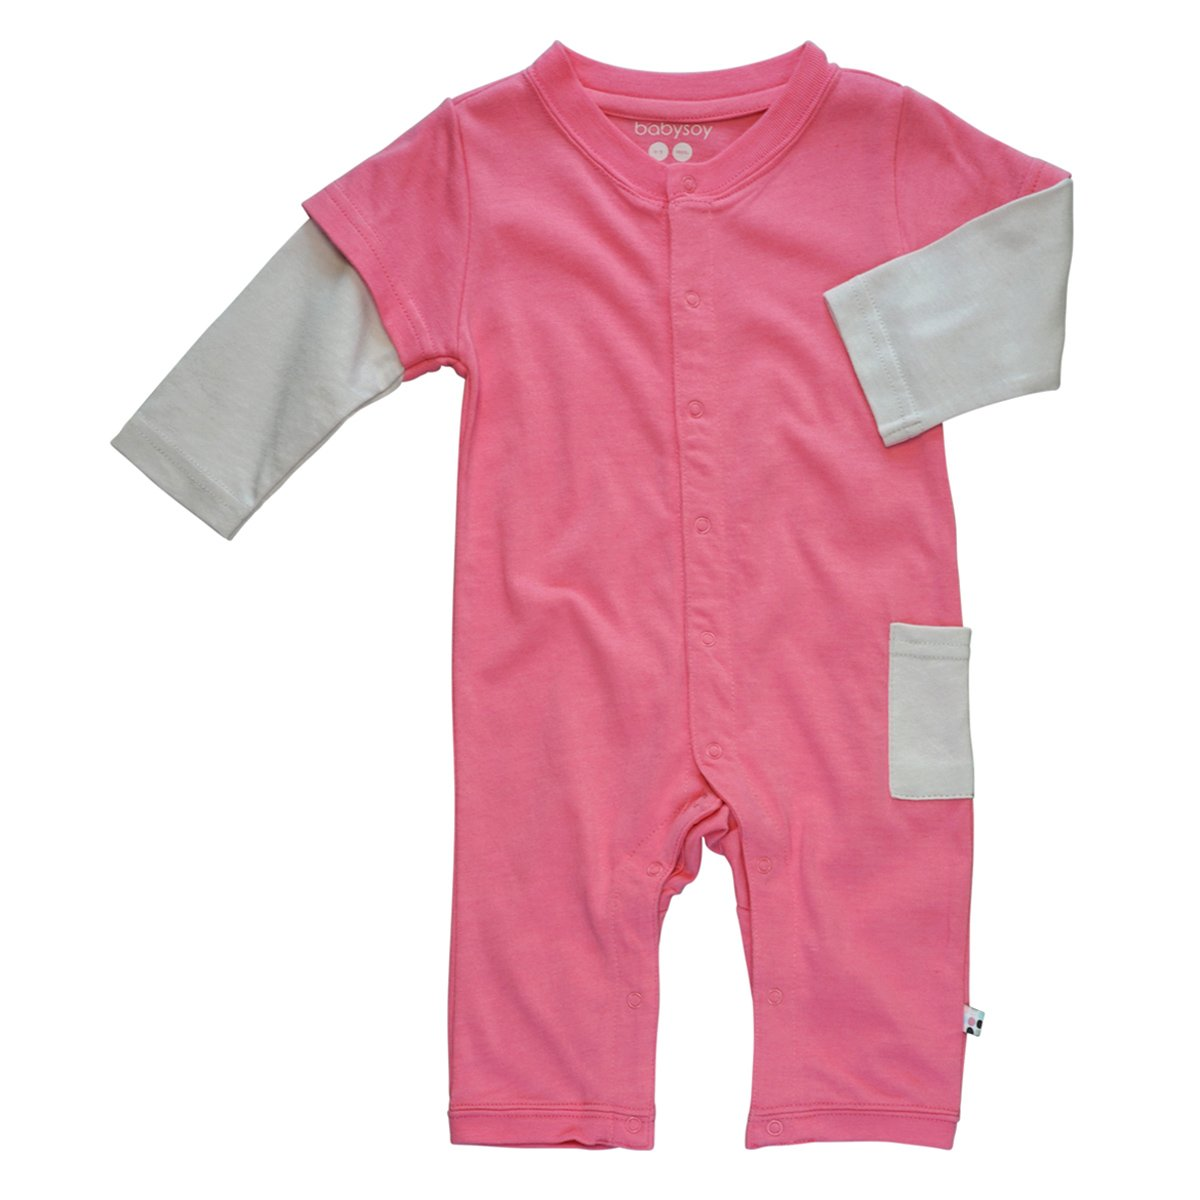 Babysoy Baby Girls' Layered One Piece, Pink Lemonade, 3-6 Months